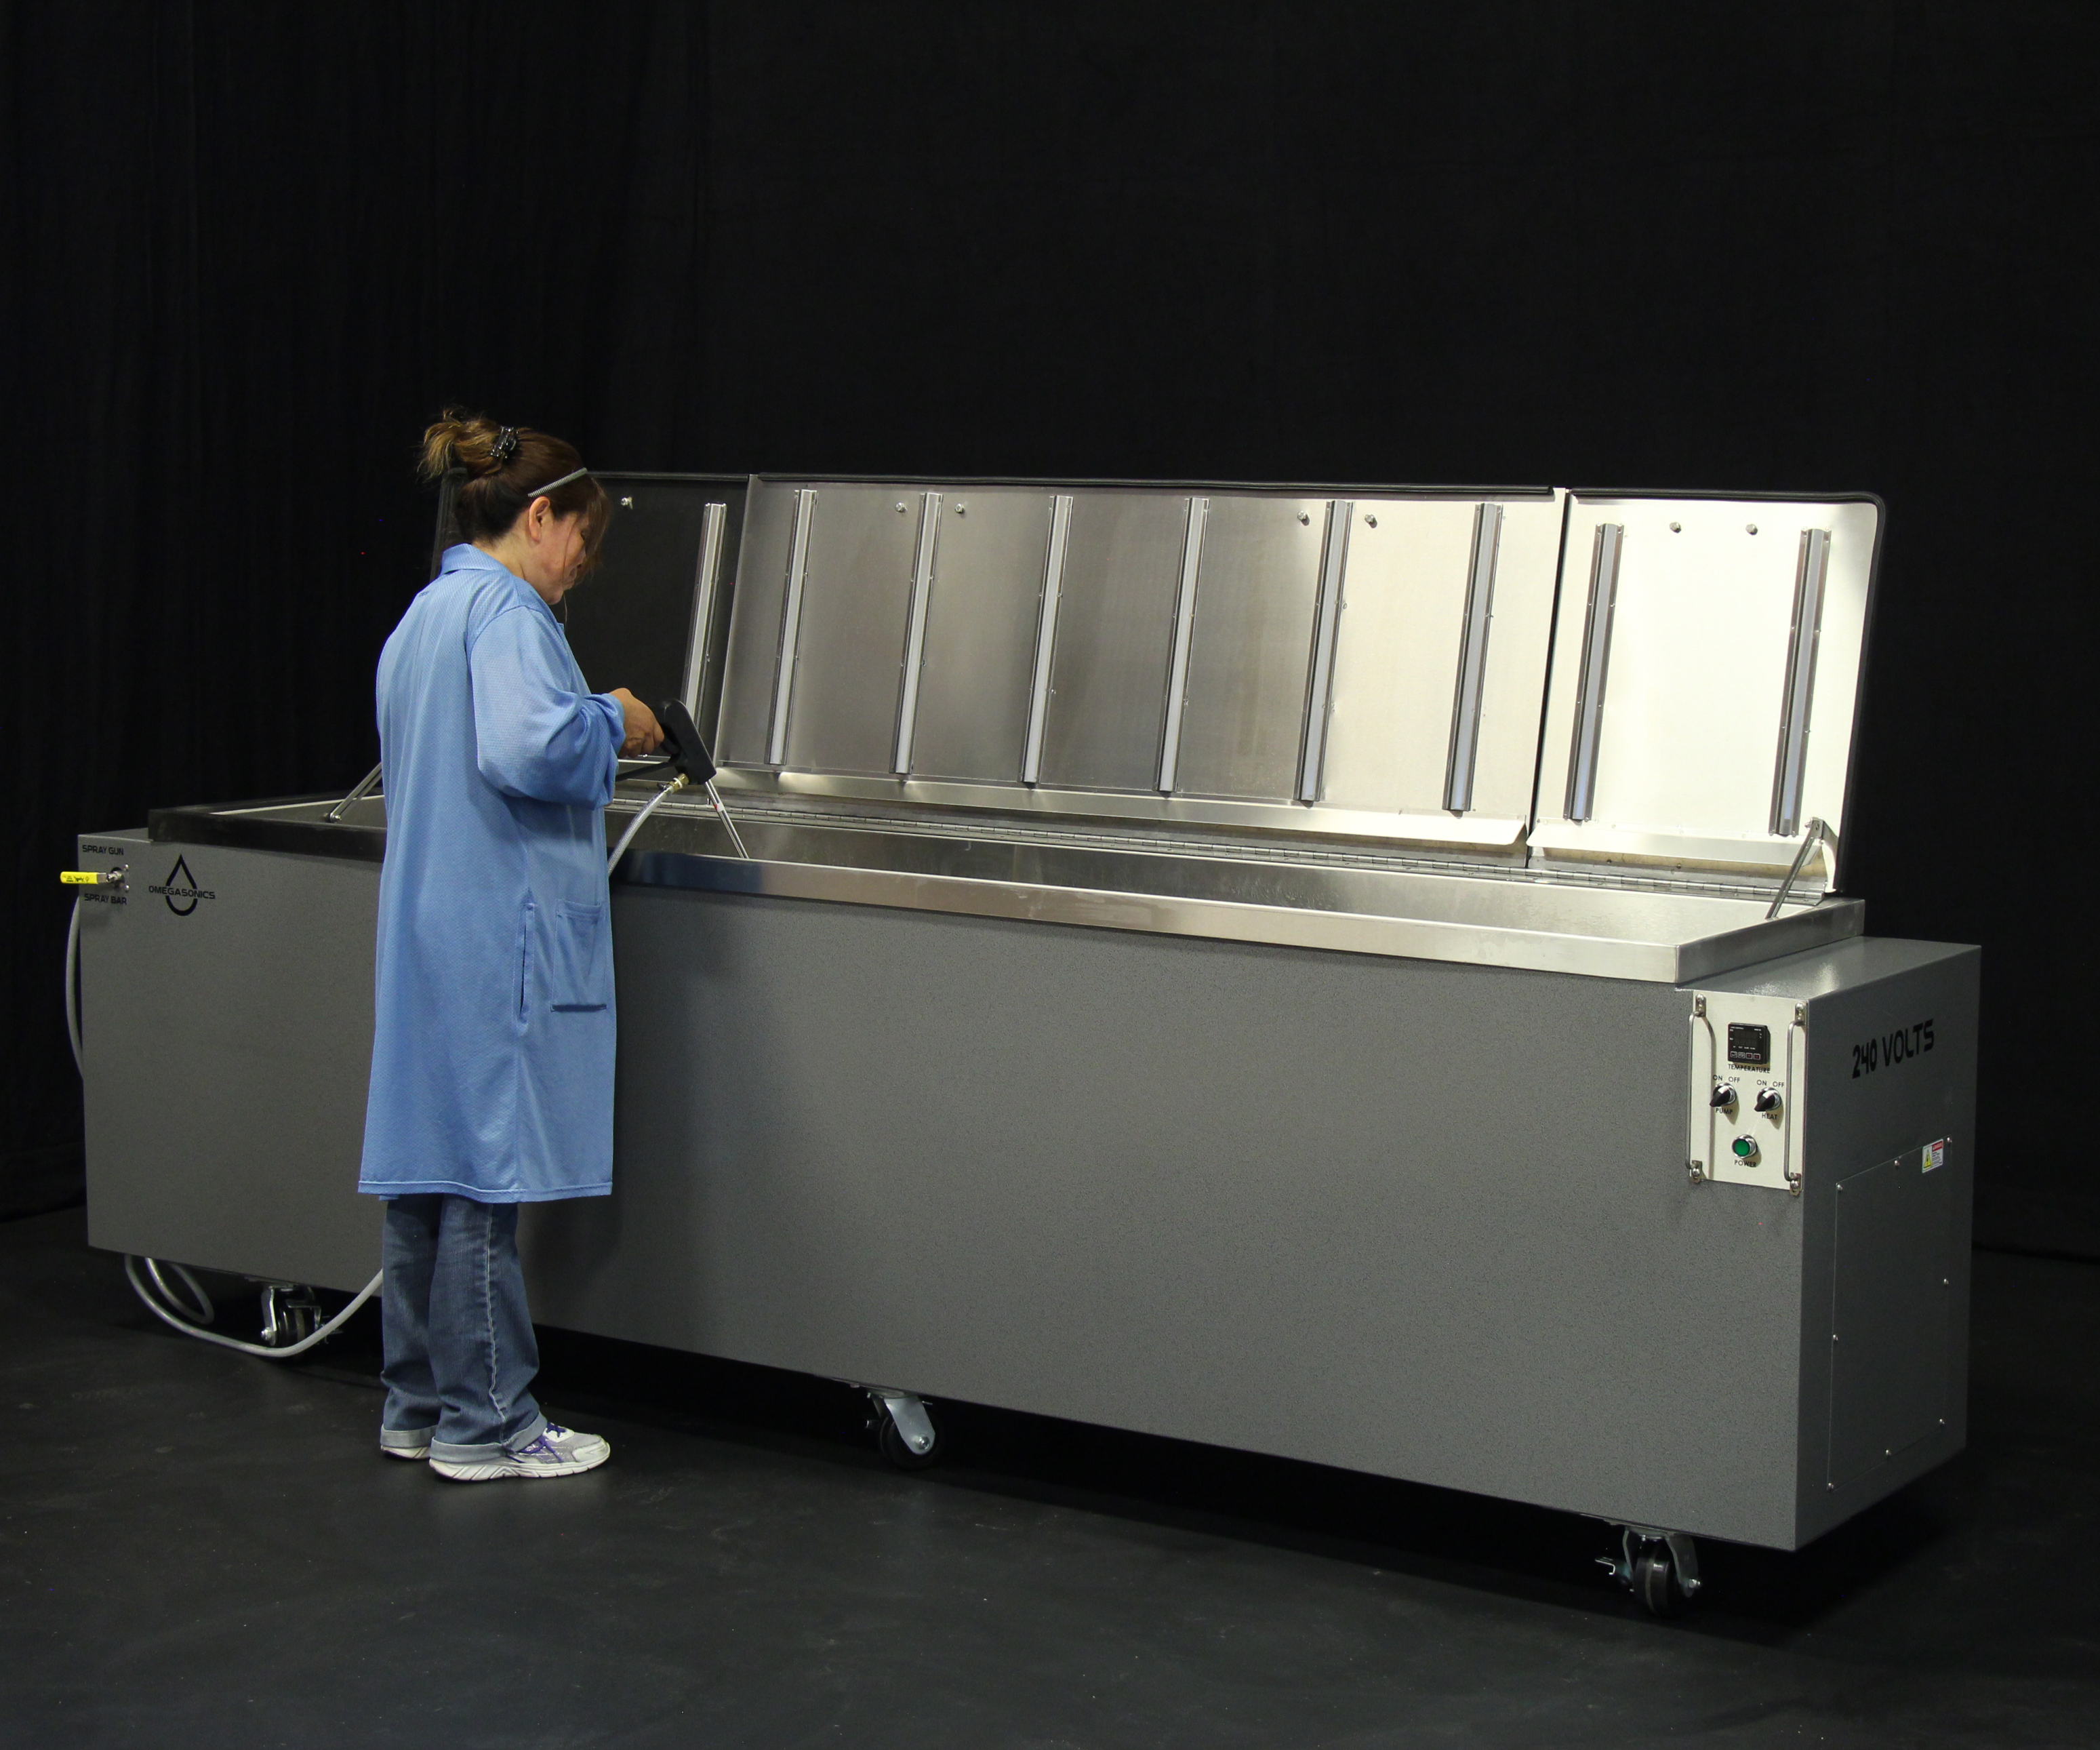 Omegasonics' customizable ultrasonic cleaning systems